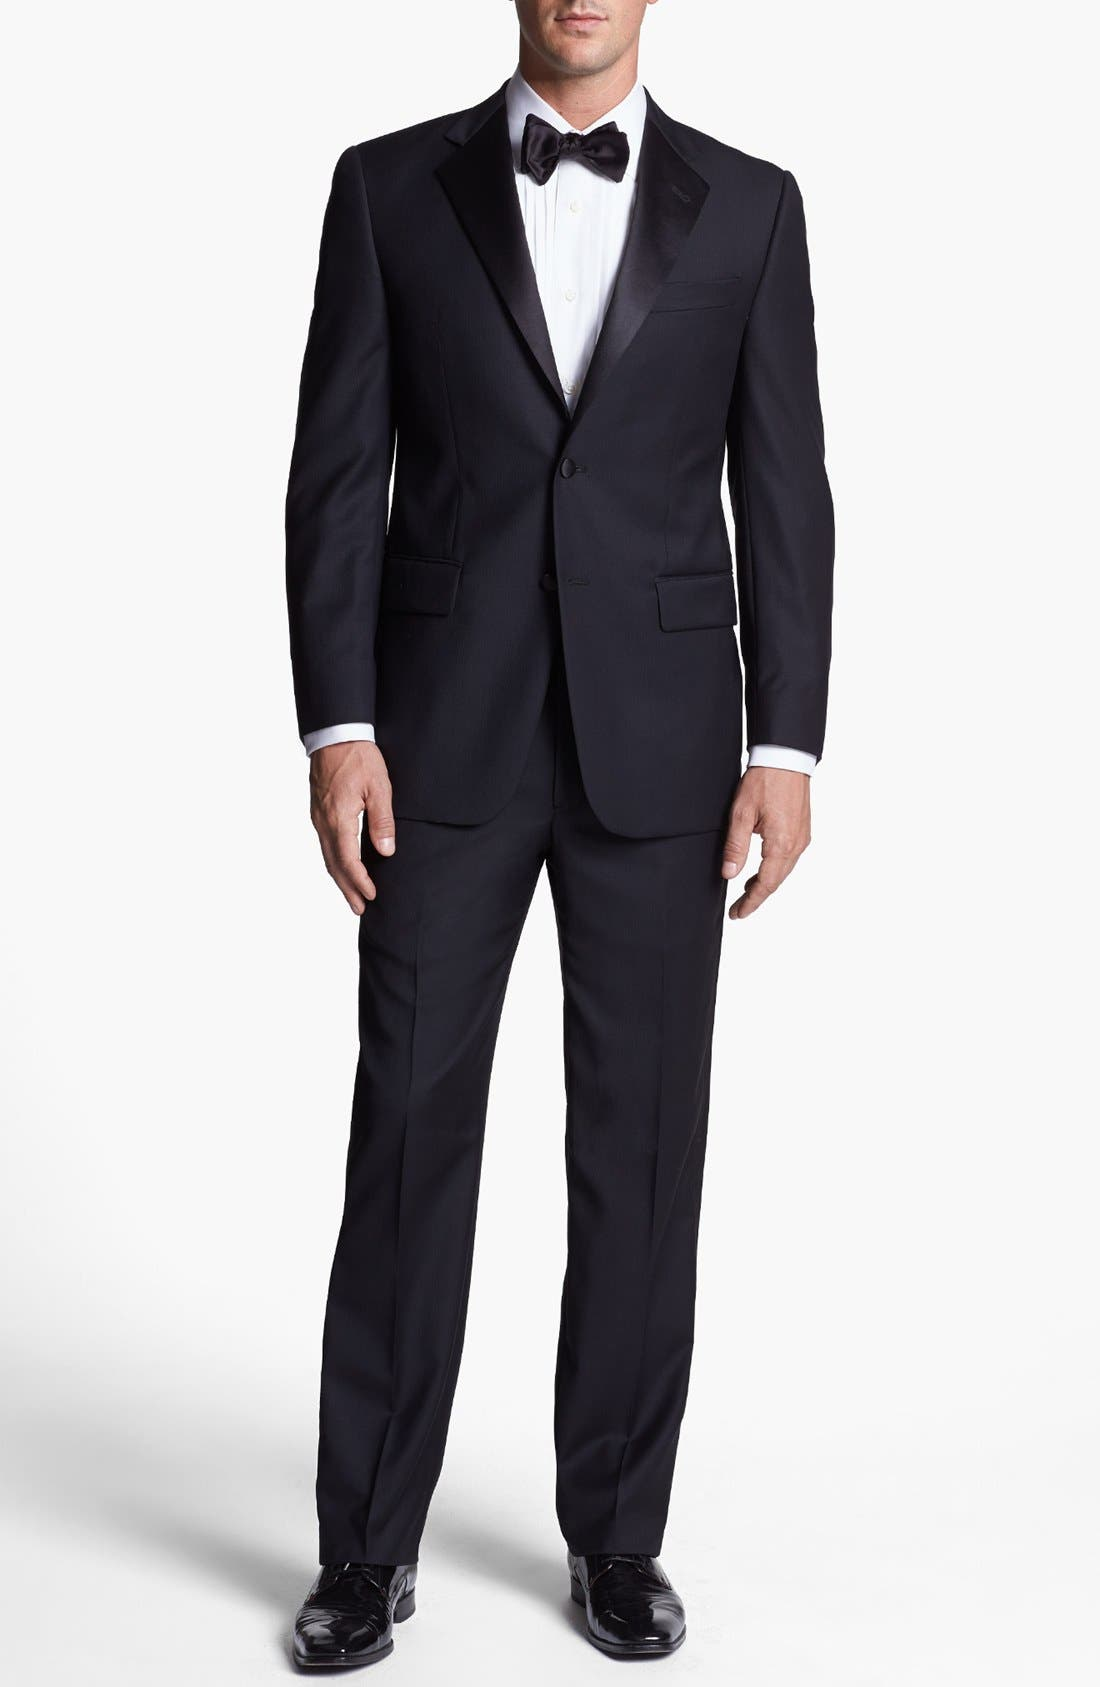 Alternate Image 1 Selected - Joseph Abboud Classic Fit Tuxedo